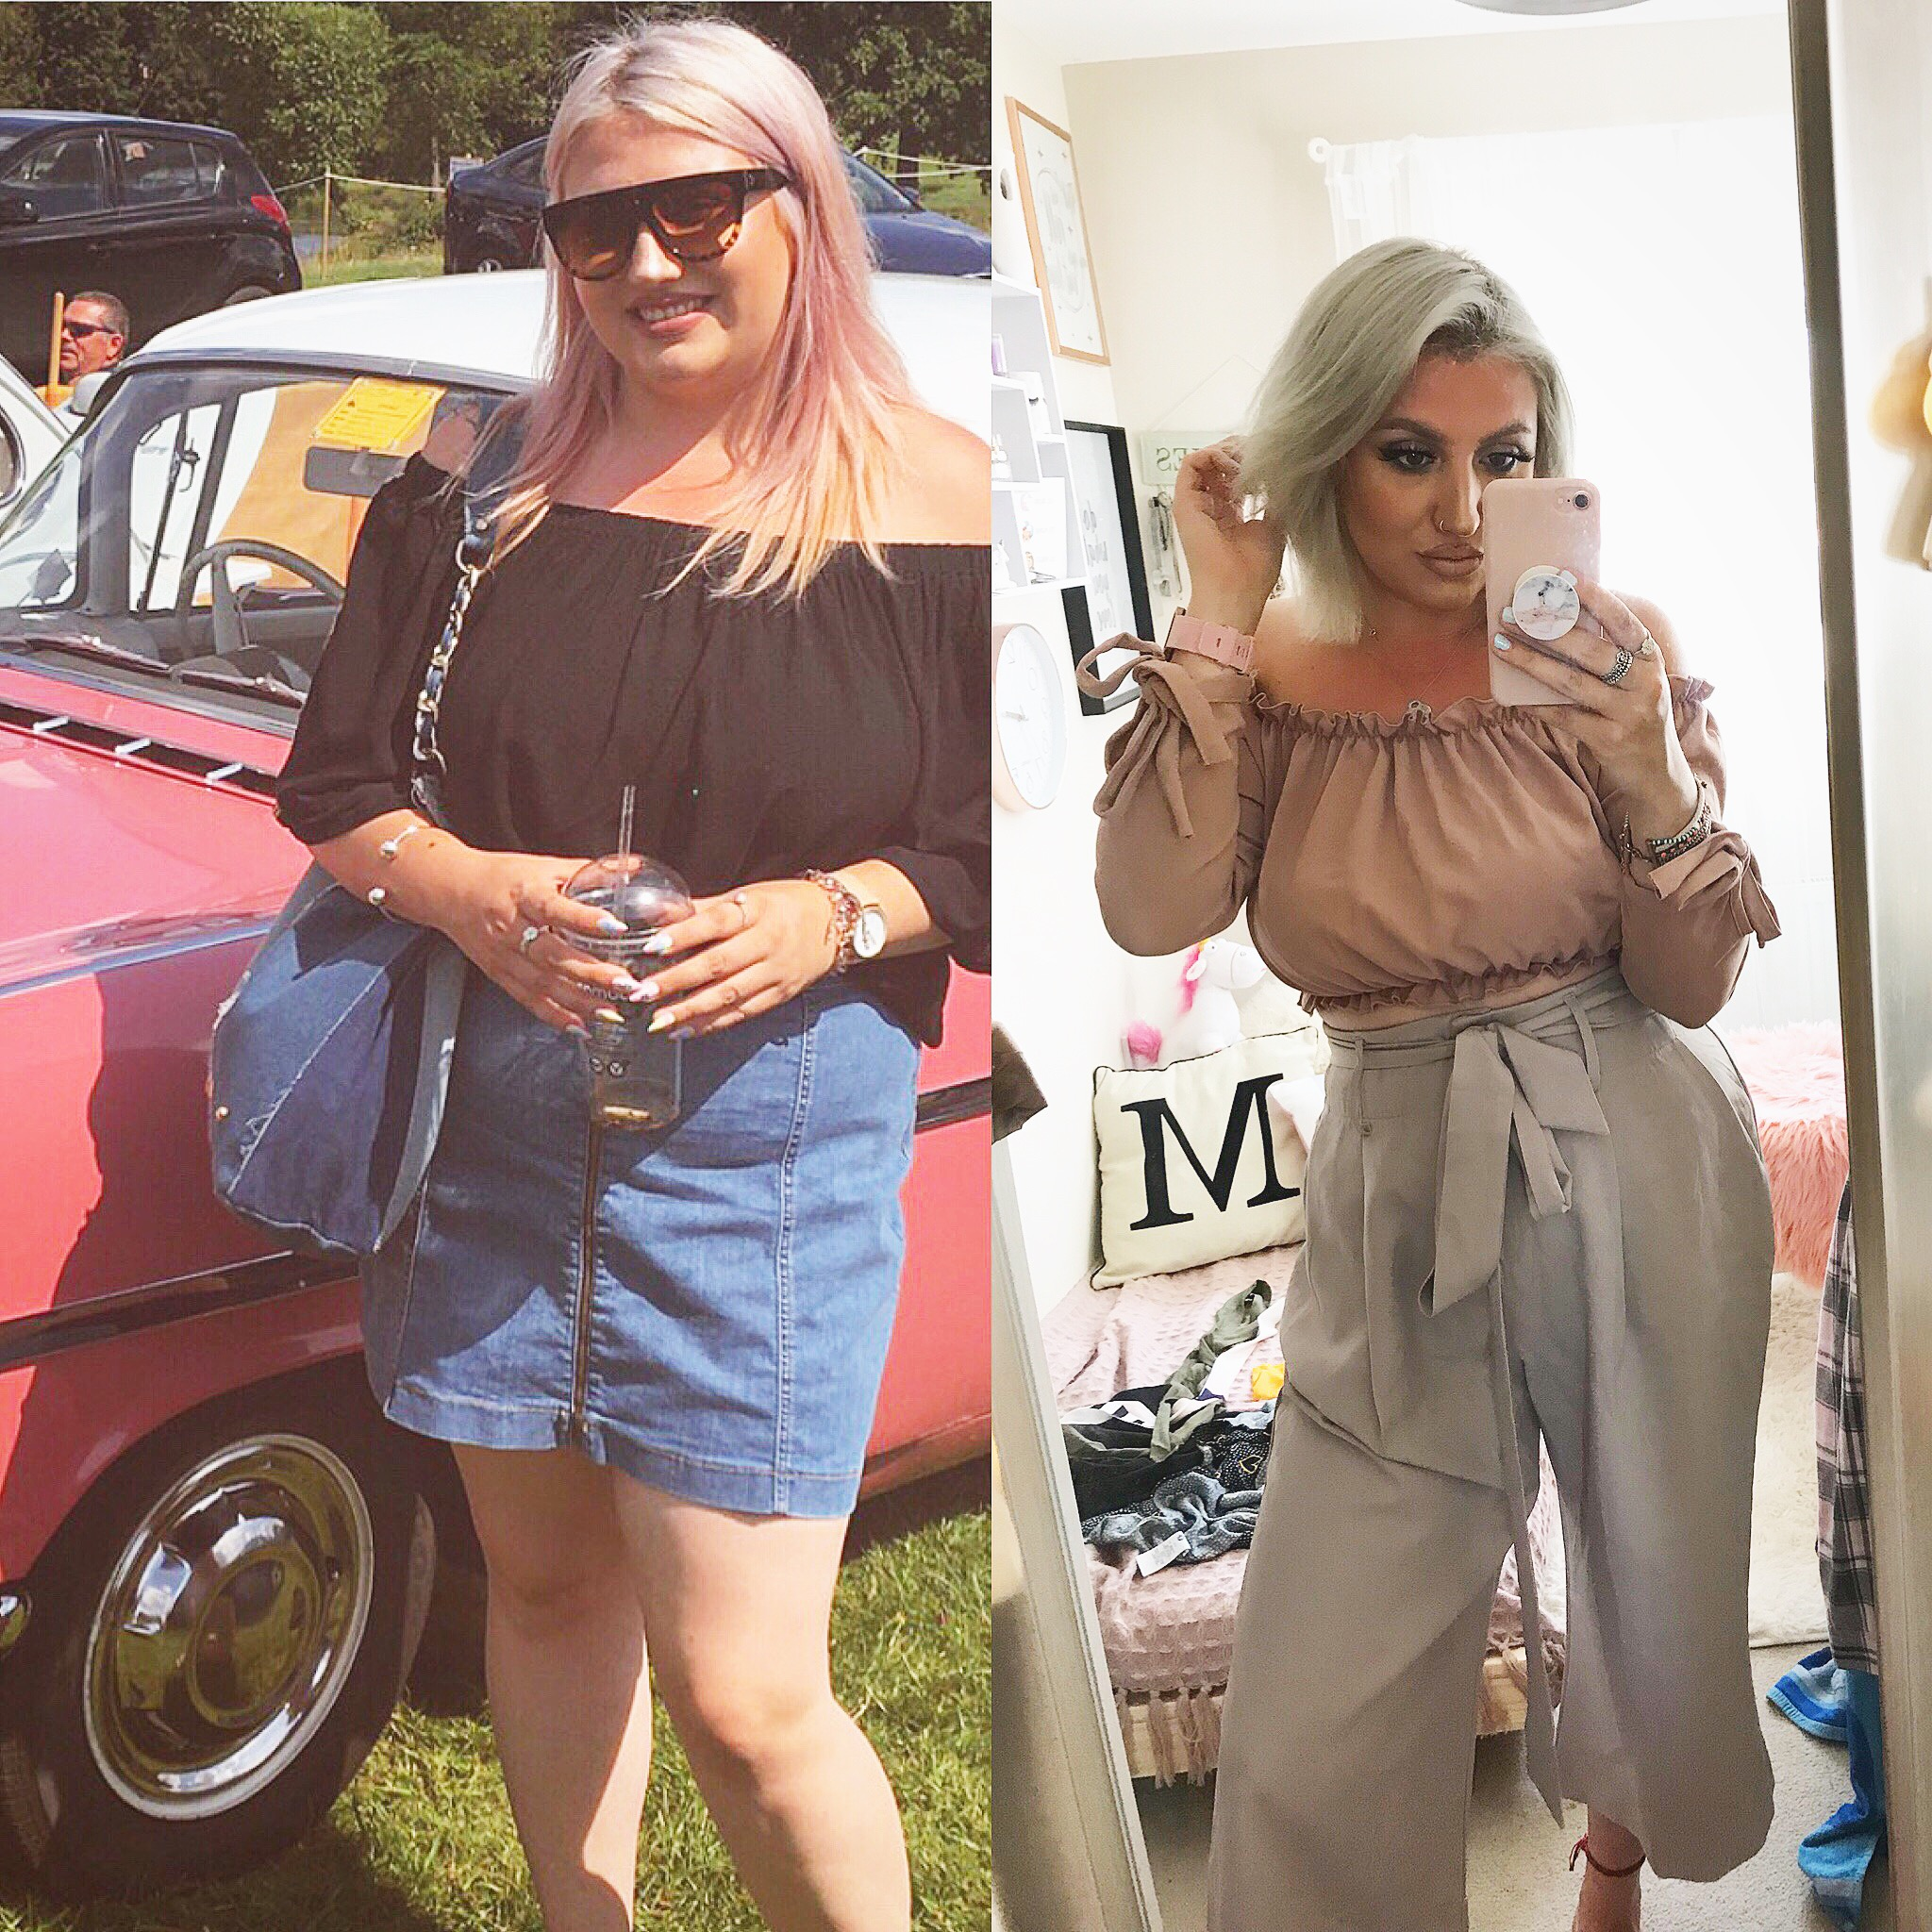 Photos before and after woman lost weight